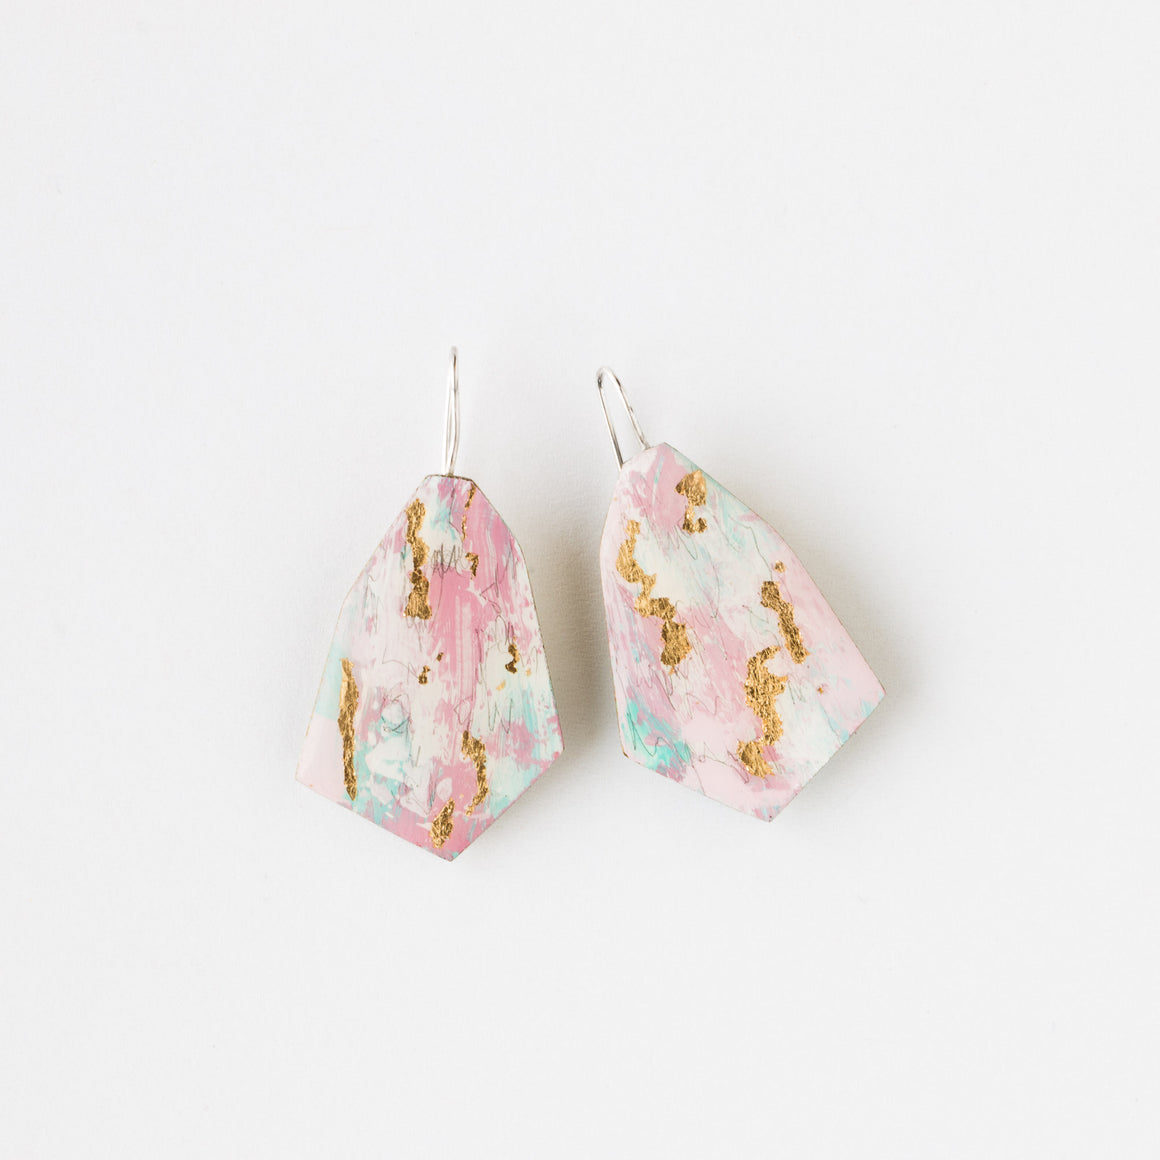 542 - Pink, Blue & Gold Painted Earrings - Handmade & Contemporary - Sold by Chic & Basta